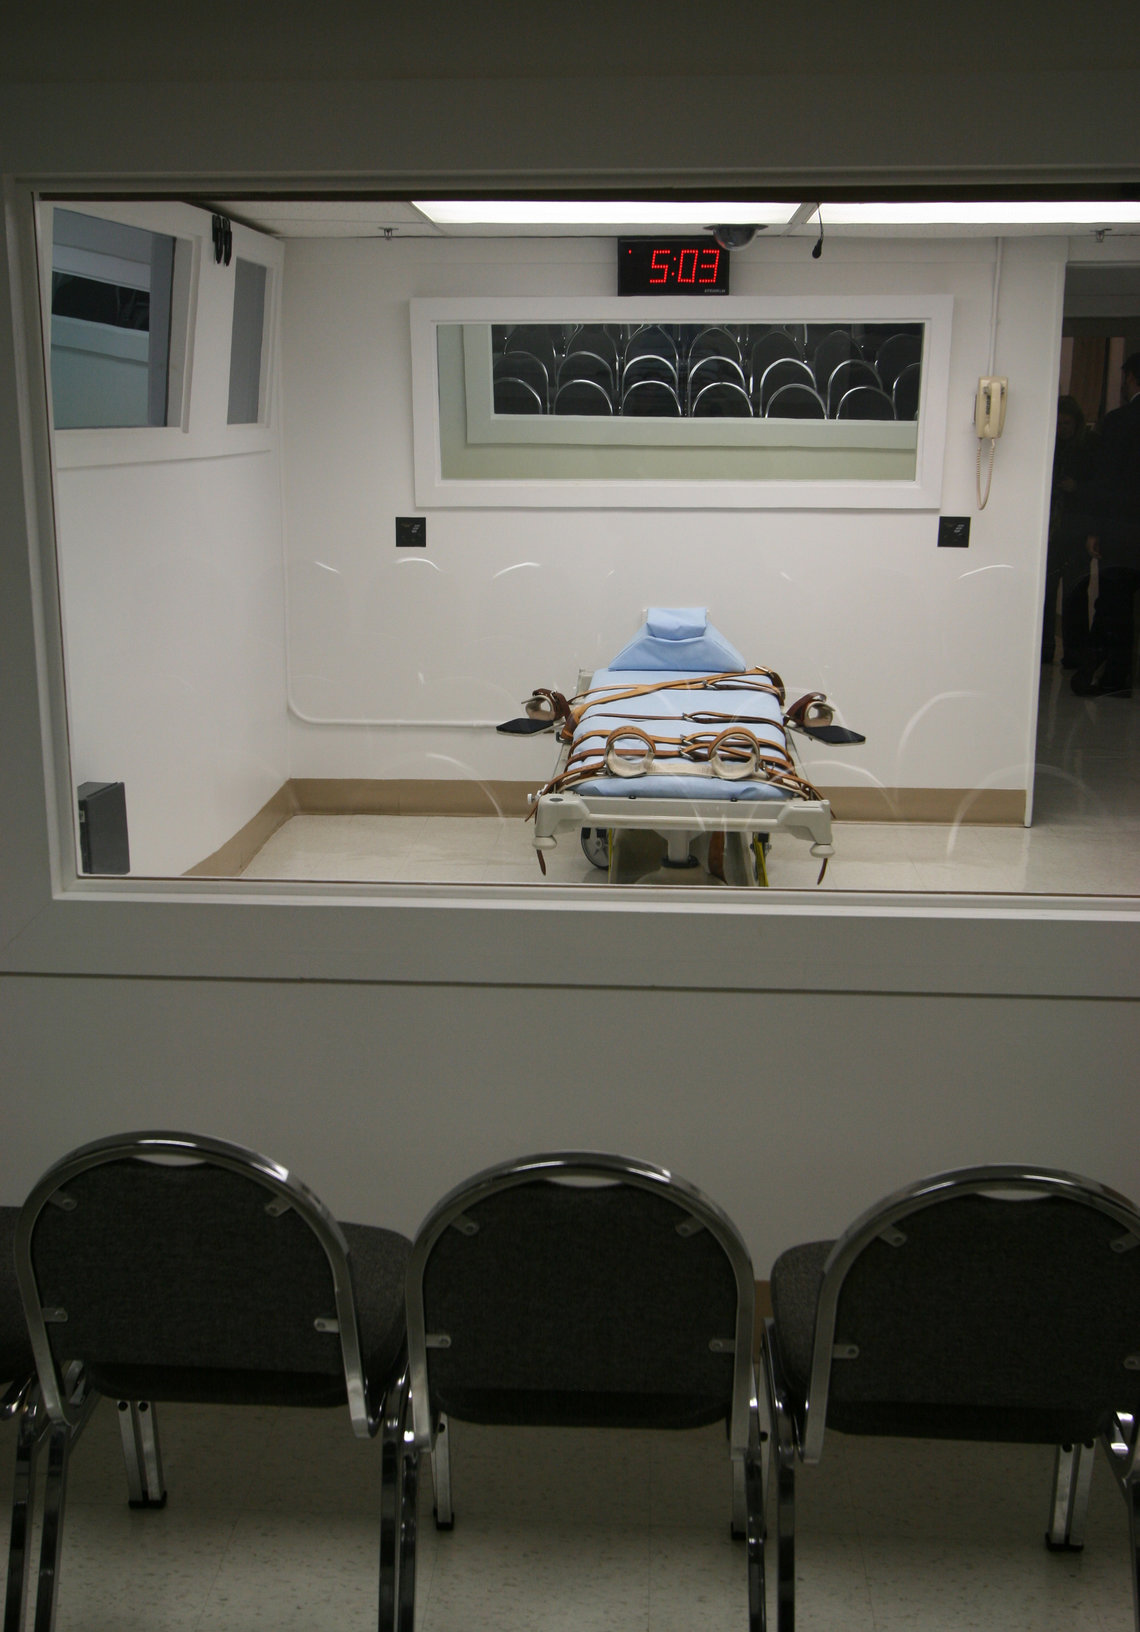 The execution chamber seen through the window of the witness room at Florida State Prison.